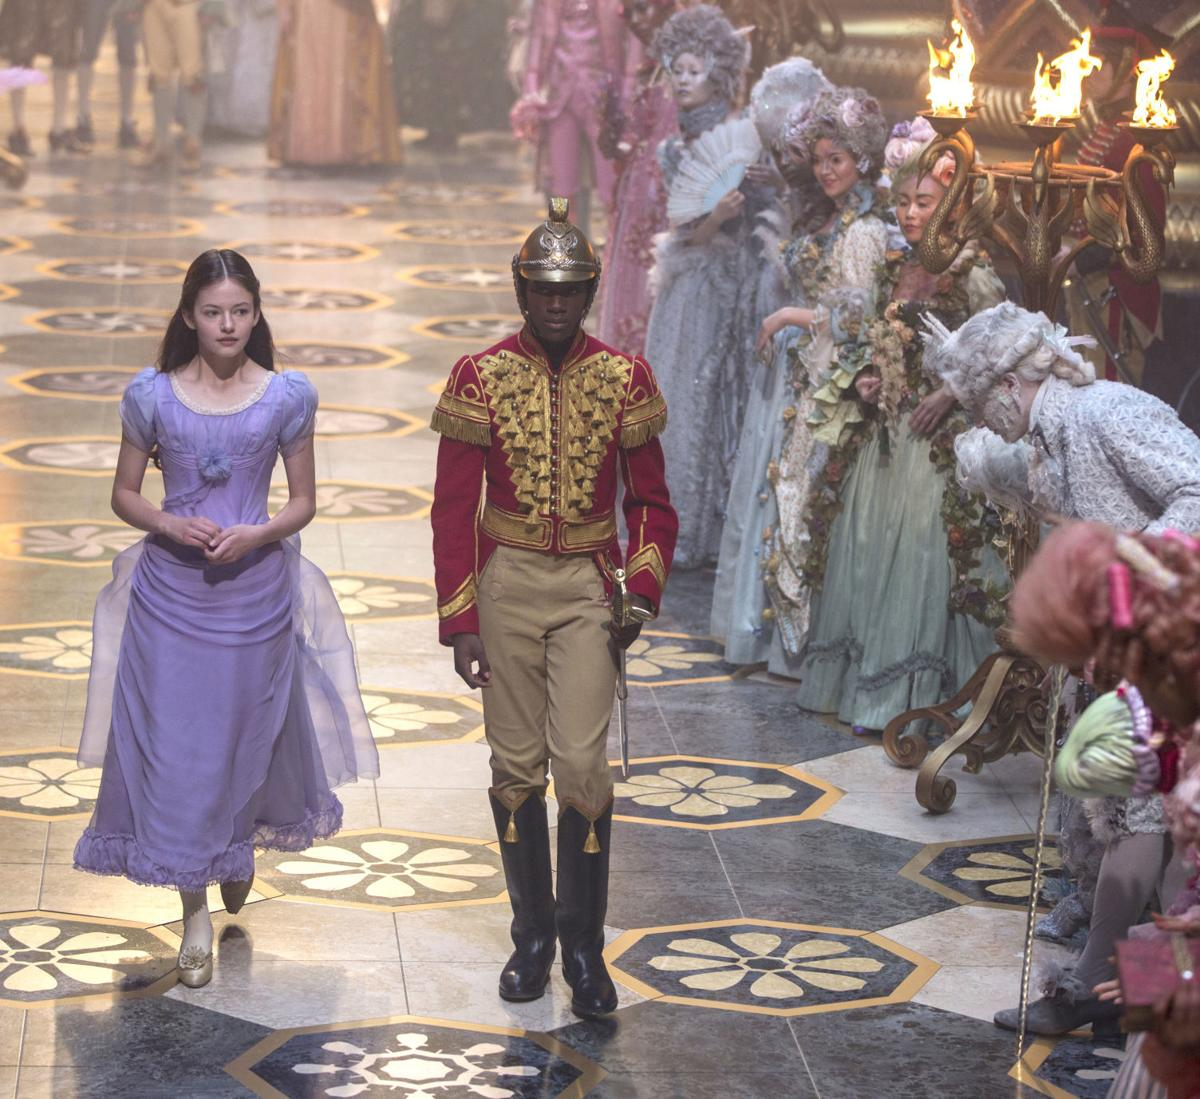 Film Review - The Nutcracker and the Four Realms